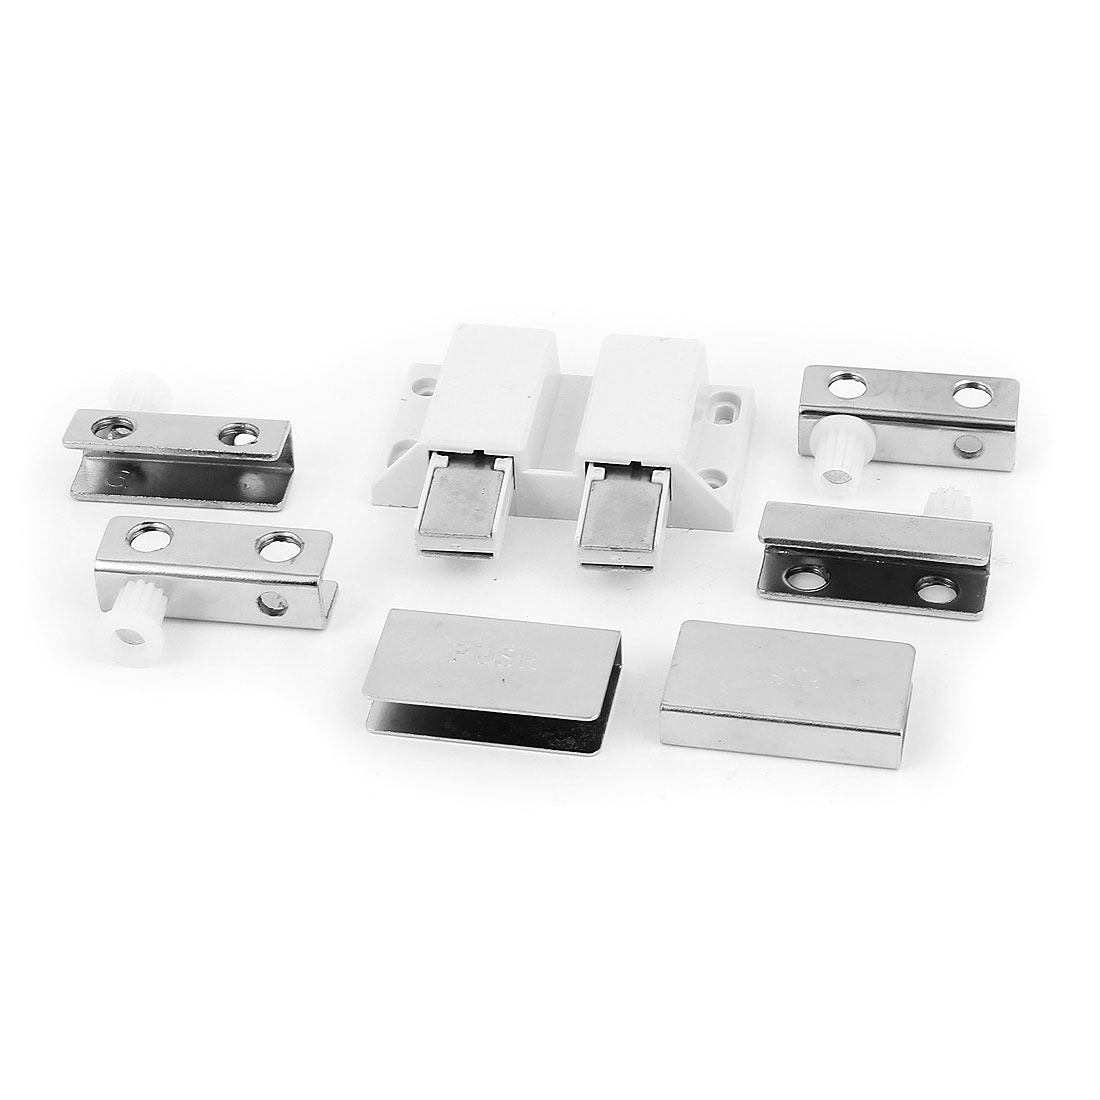 Metal Clamp Clip Glass Door Cabinet Push to Open Double Head Magnetic Catch Latch Stop Stopper